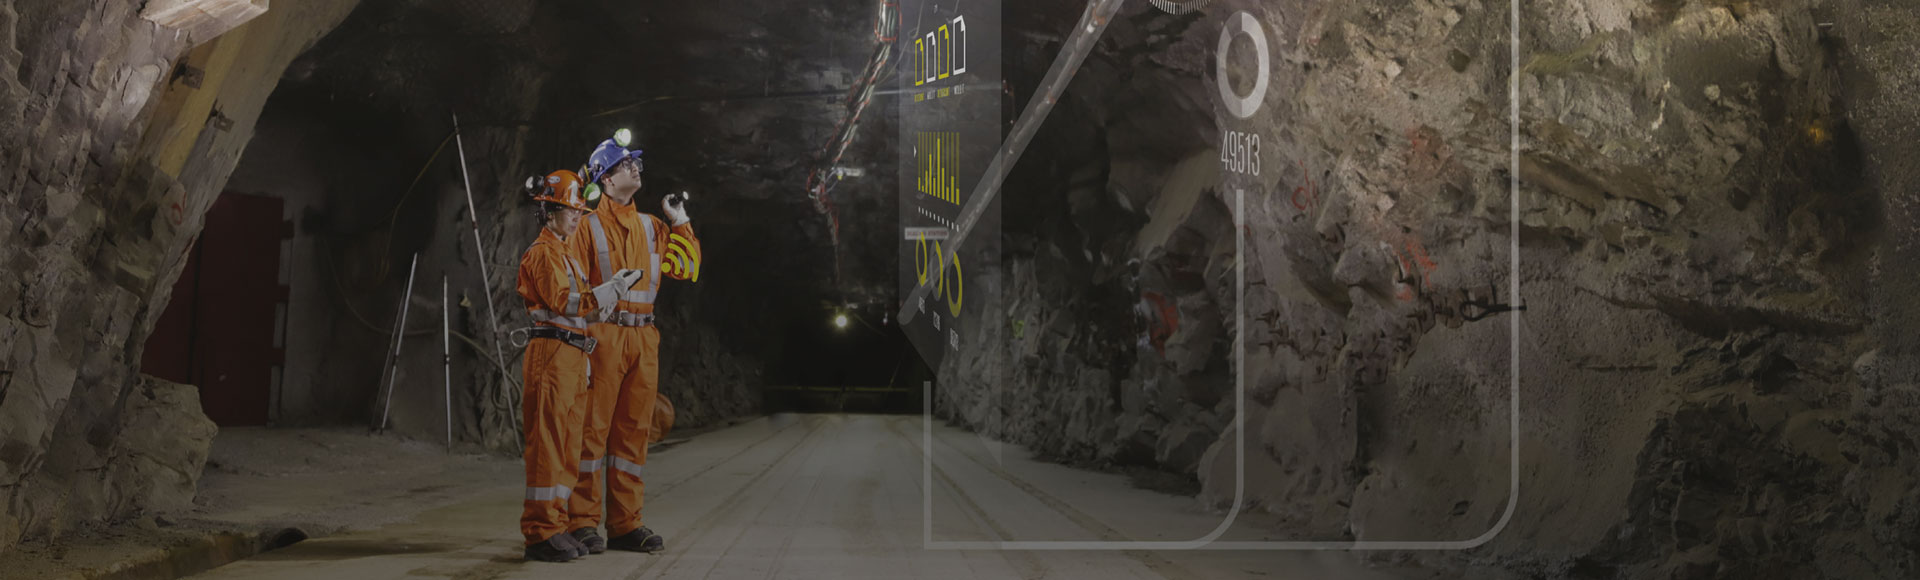 Two Hatch advisory team members providing business transformation and improvement advisory services in a digital mine to improve performance and create sustainable value.